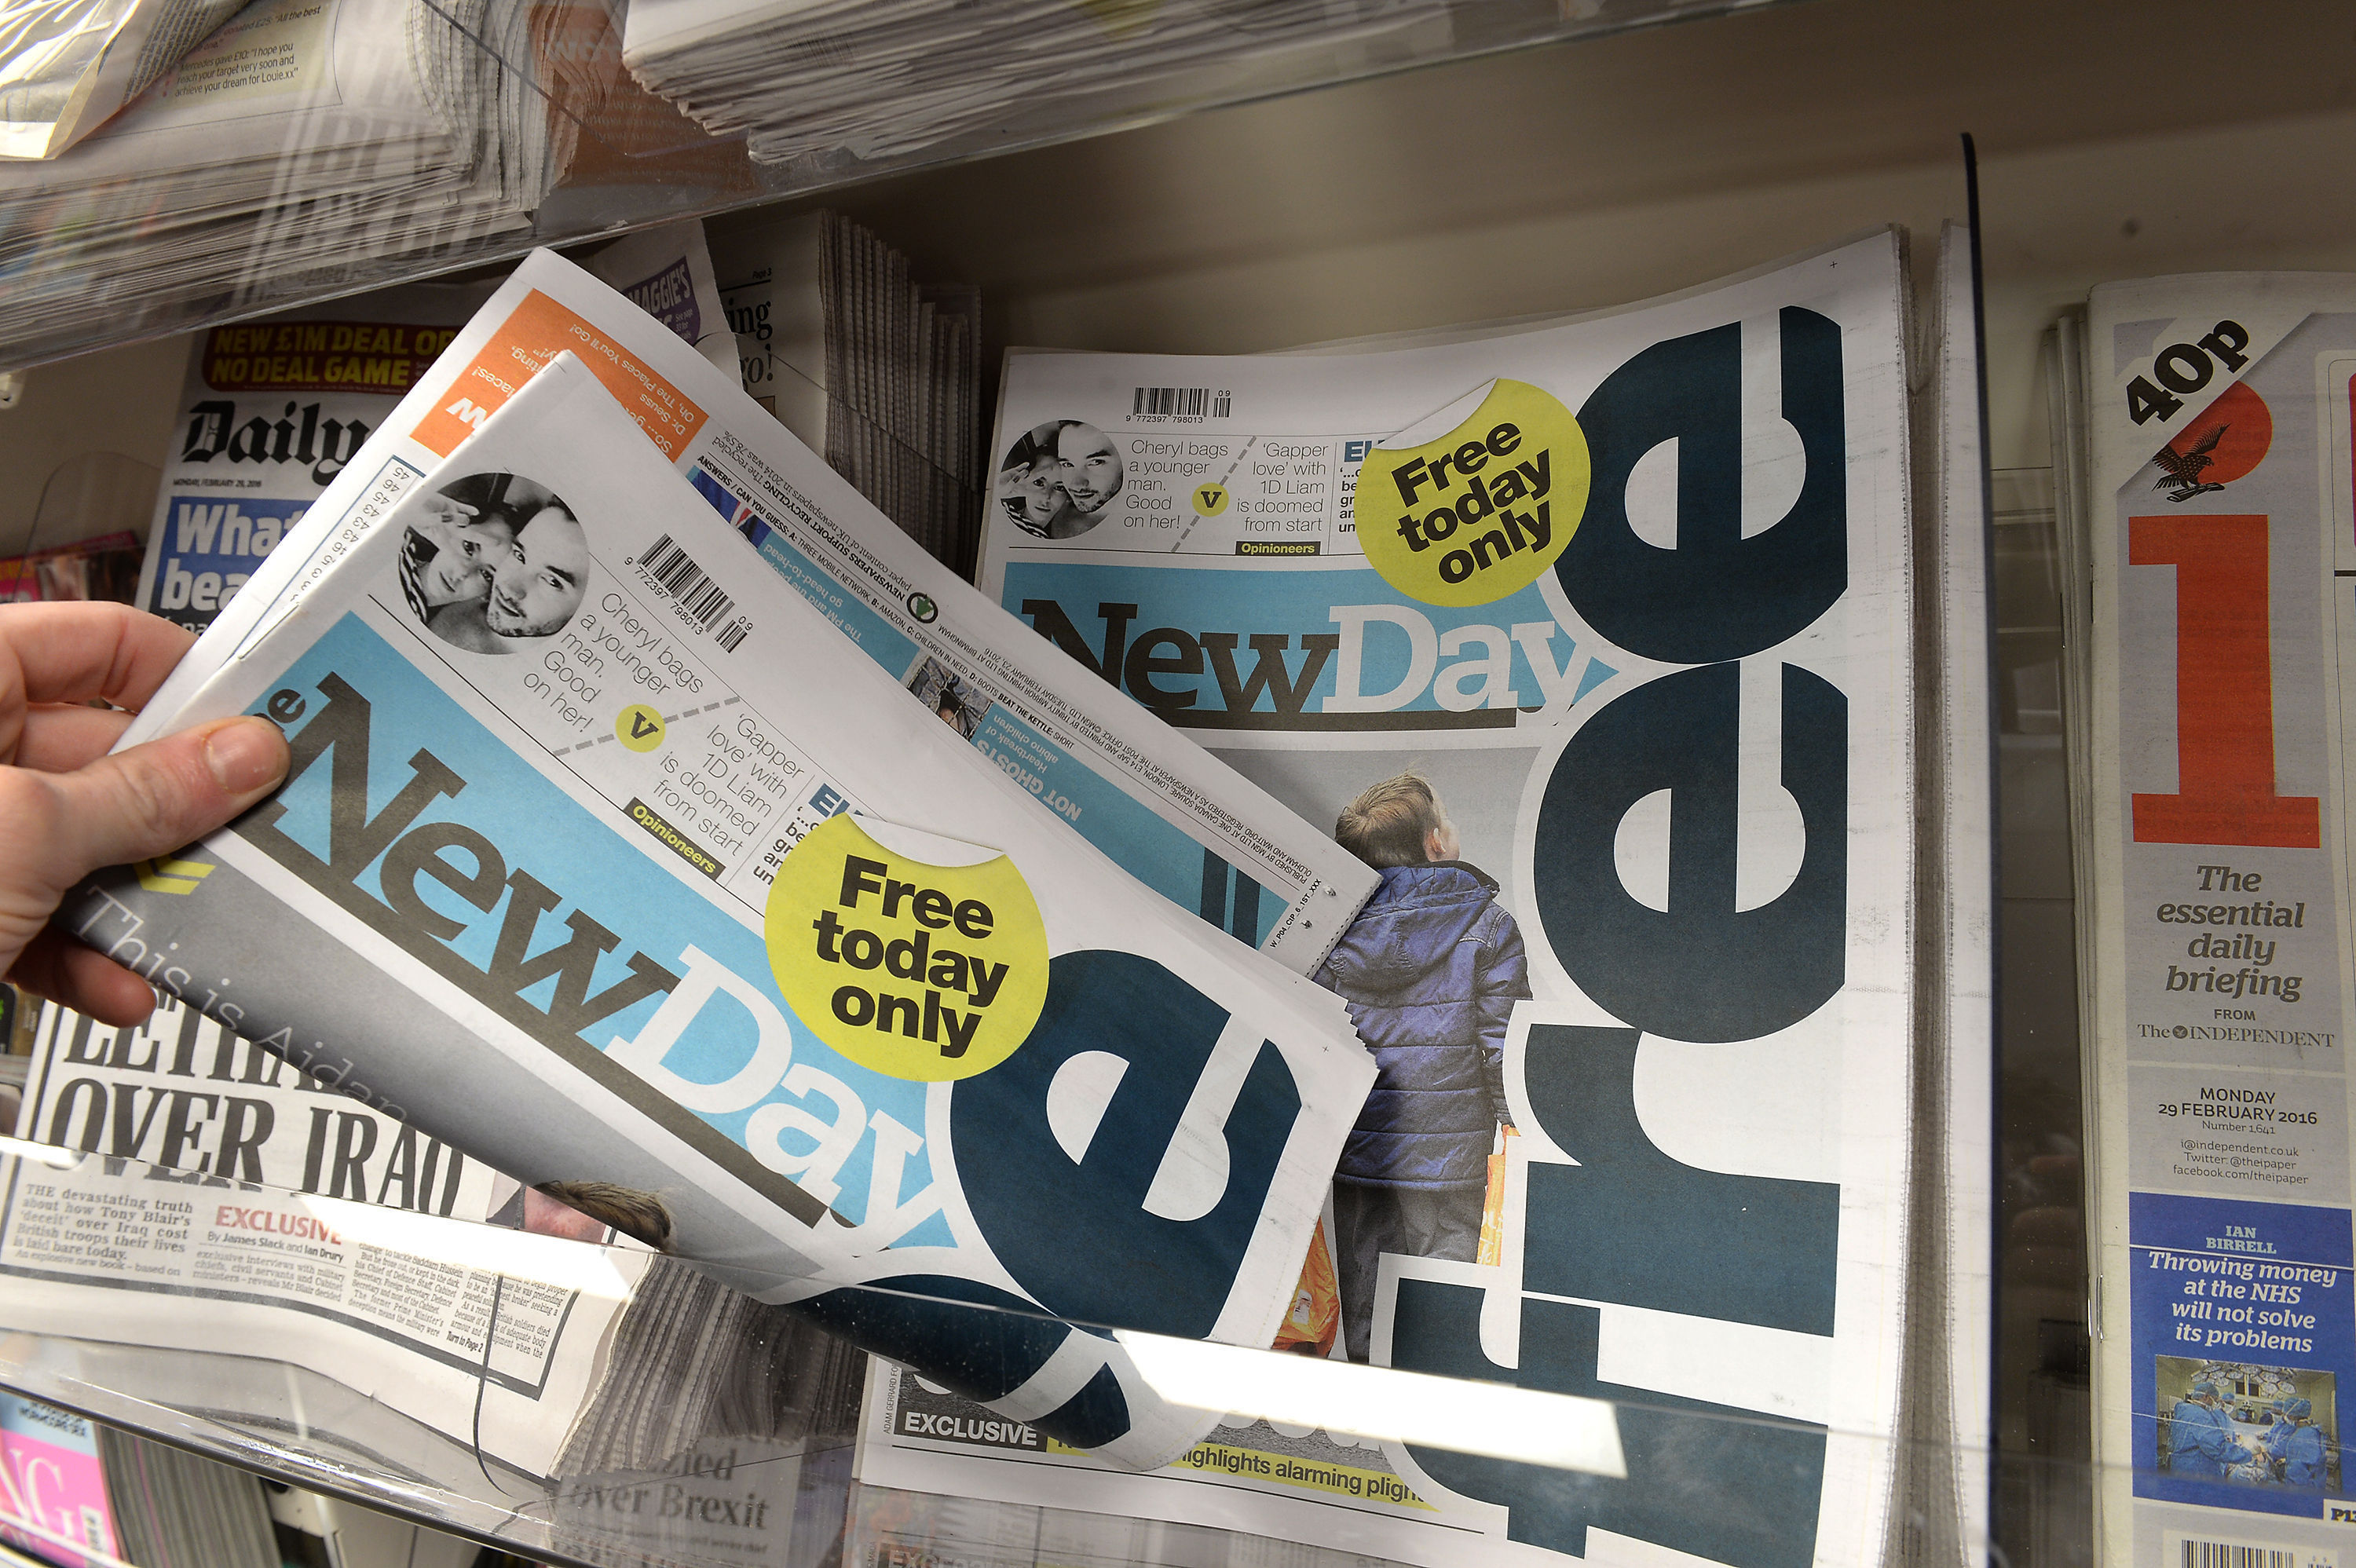 New Day paper scrapped after just nine weeks